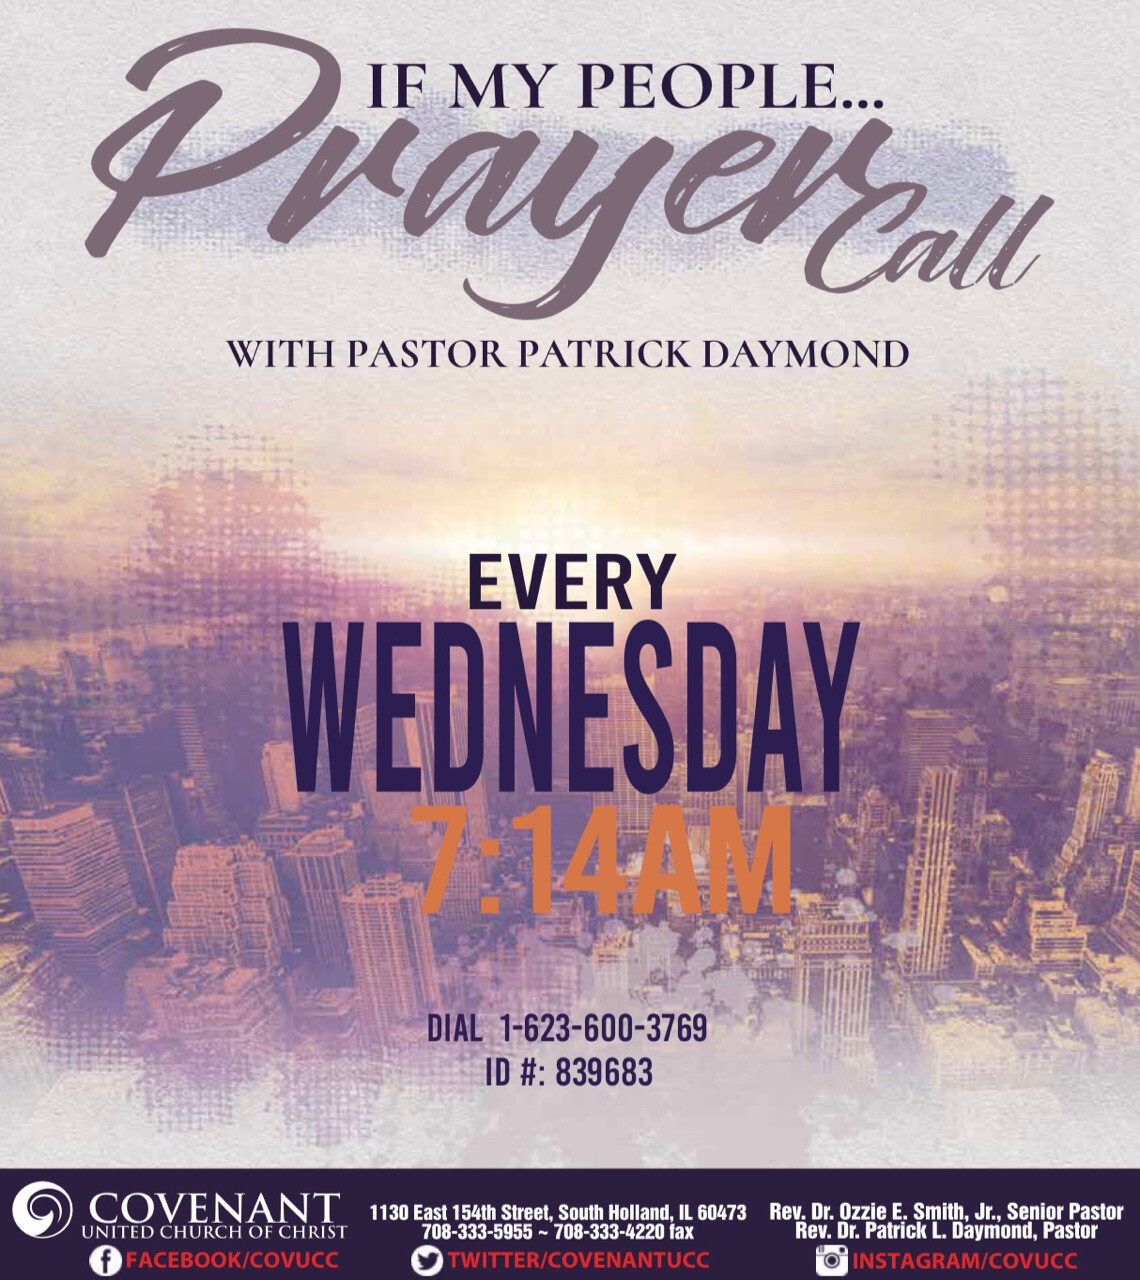 Prayer Call Wednesdays